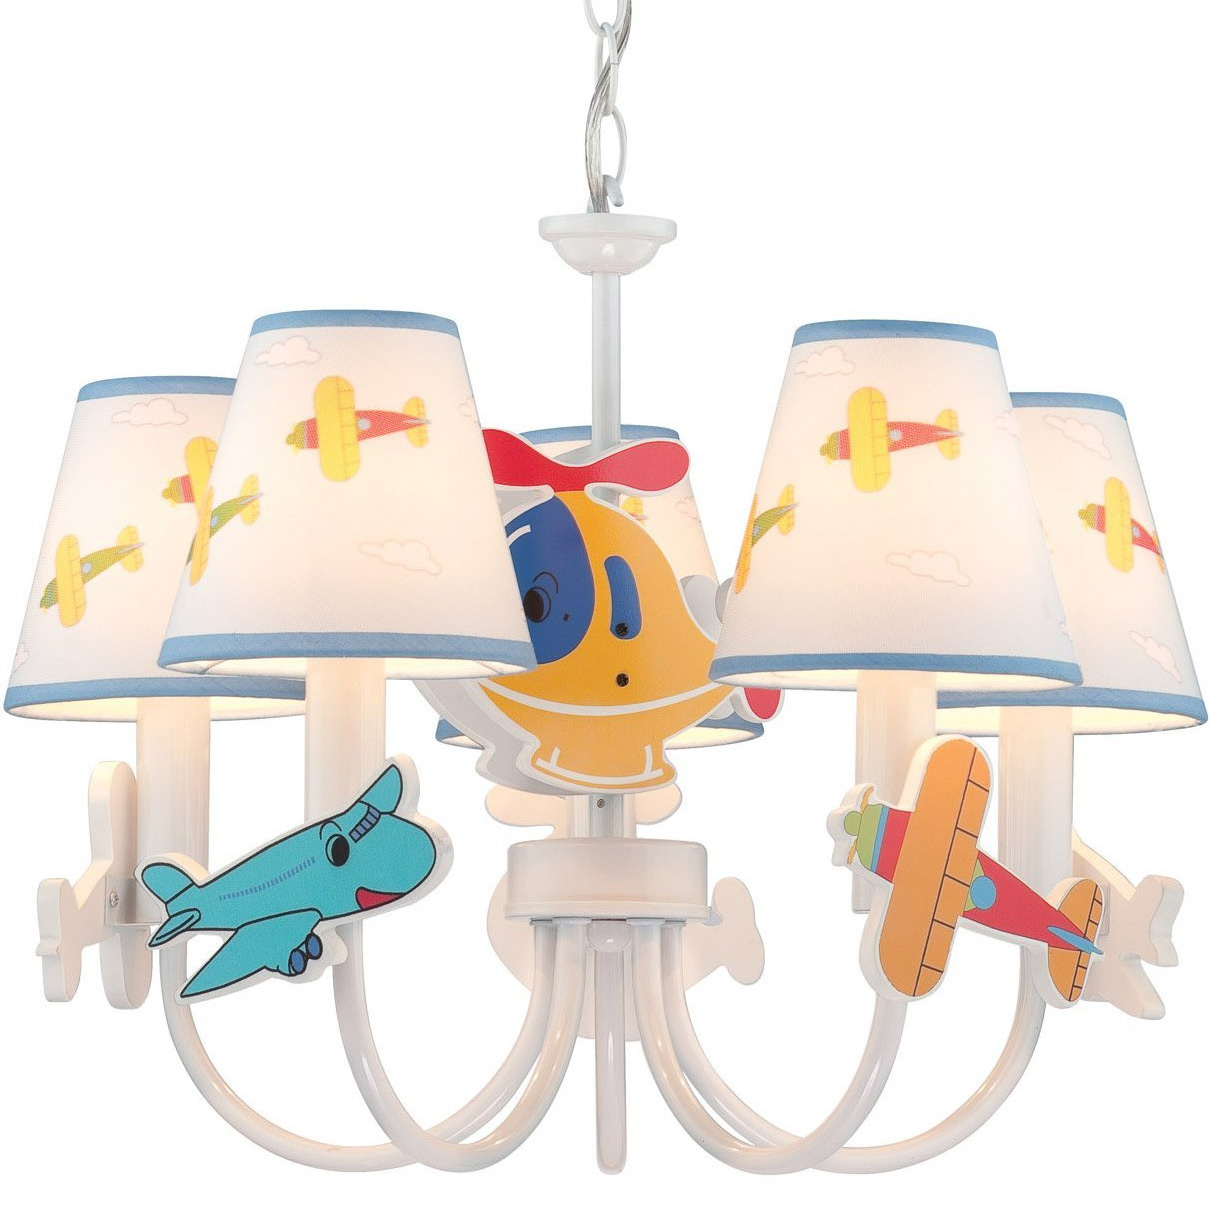 Aeroplani Ceiling Lamp In Kids Lamps